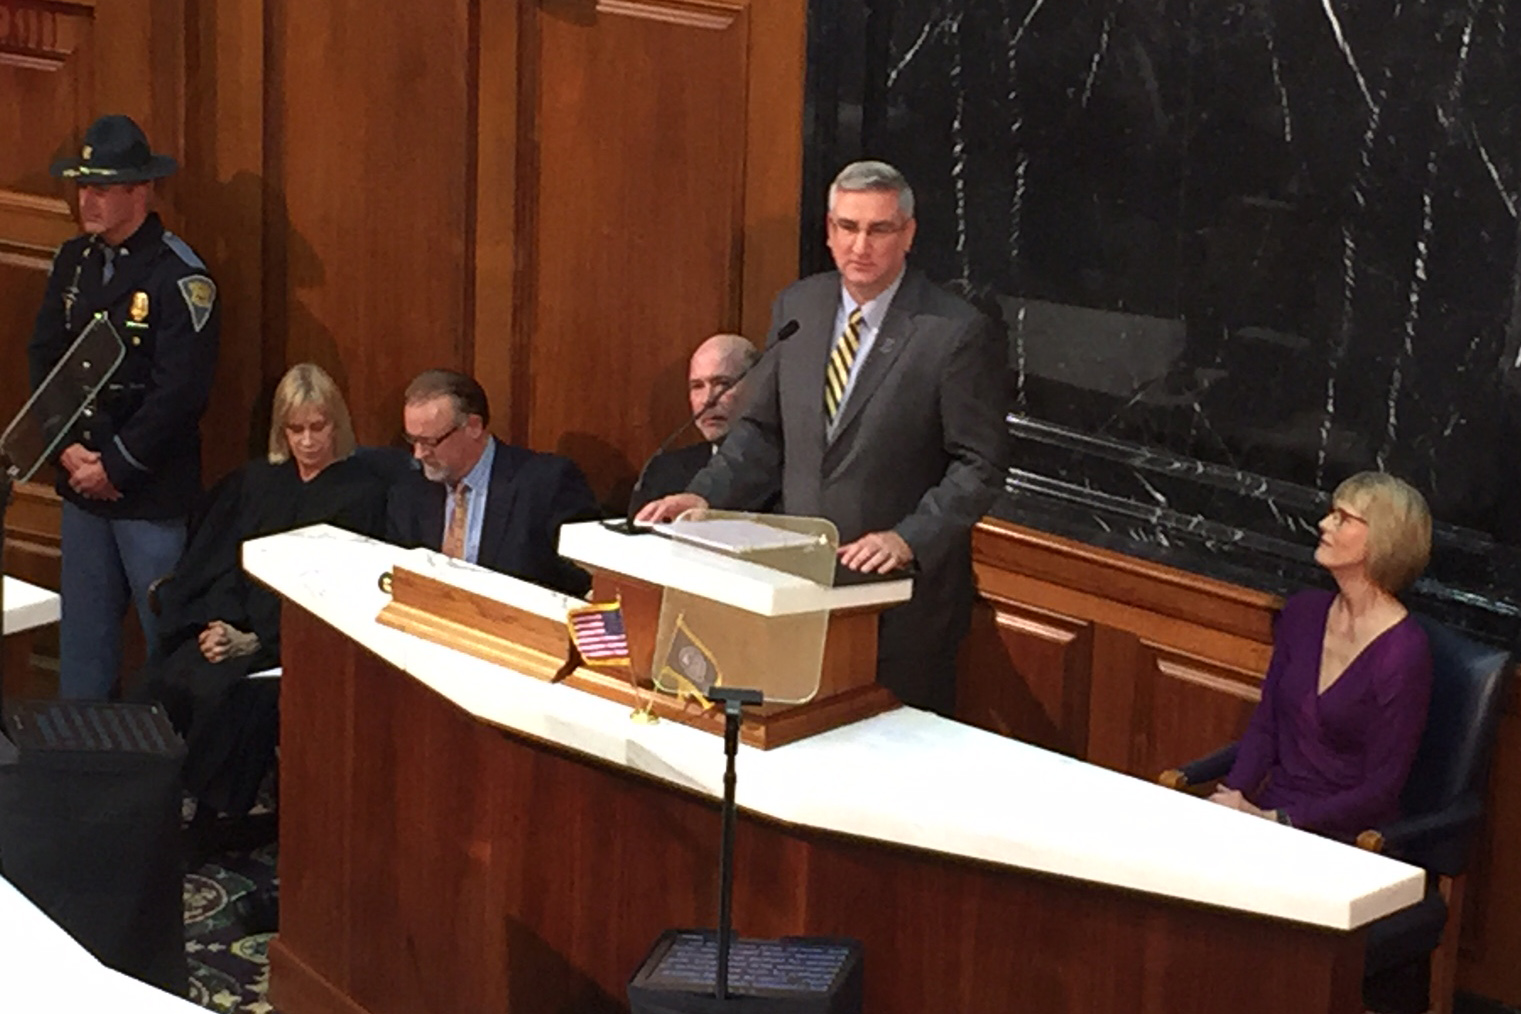 New Indiana Gov. Eric Holcomb delivers his first State of the State address on Jan. 17, 2017. In his address, Holcomb outlined five goals for his administration including road funding and preschool.